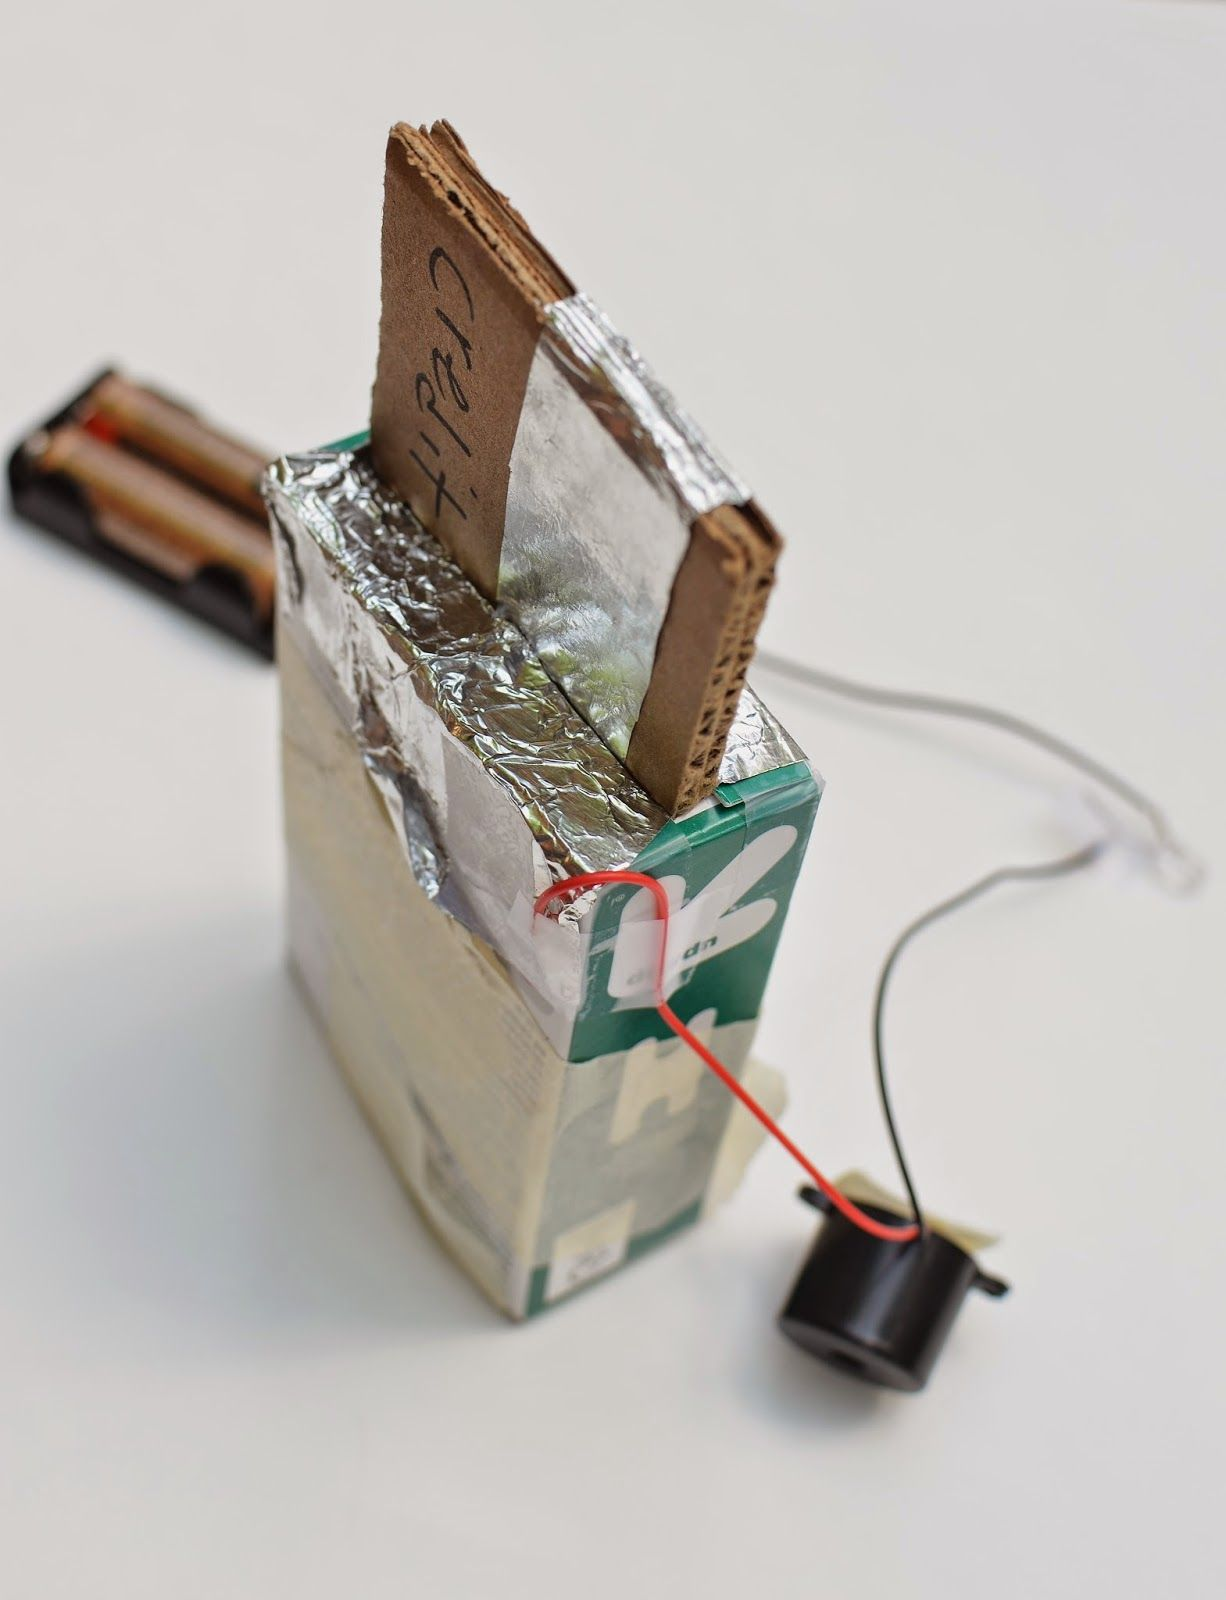 Very awesome DIY play credit card reader circuit-building exercise ...